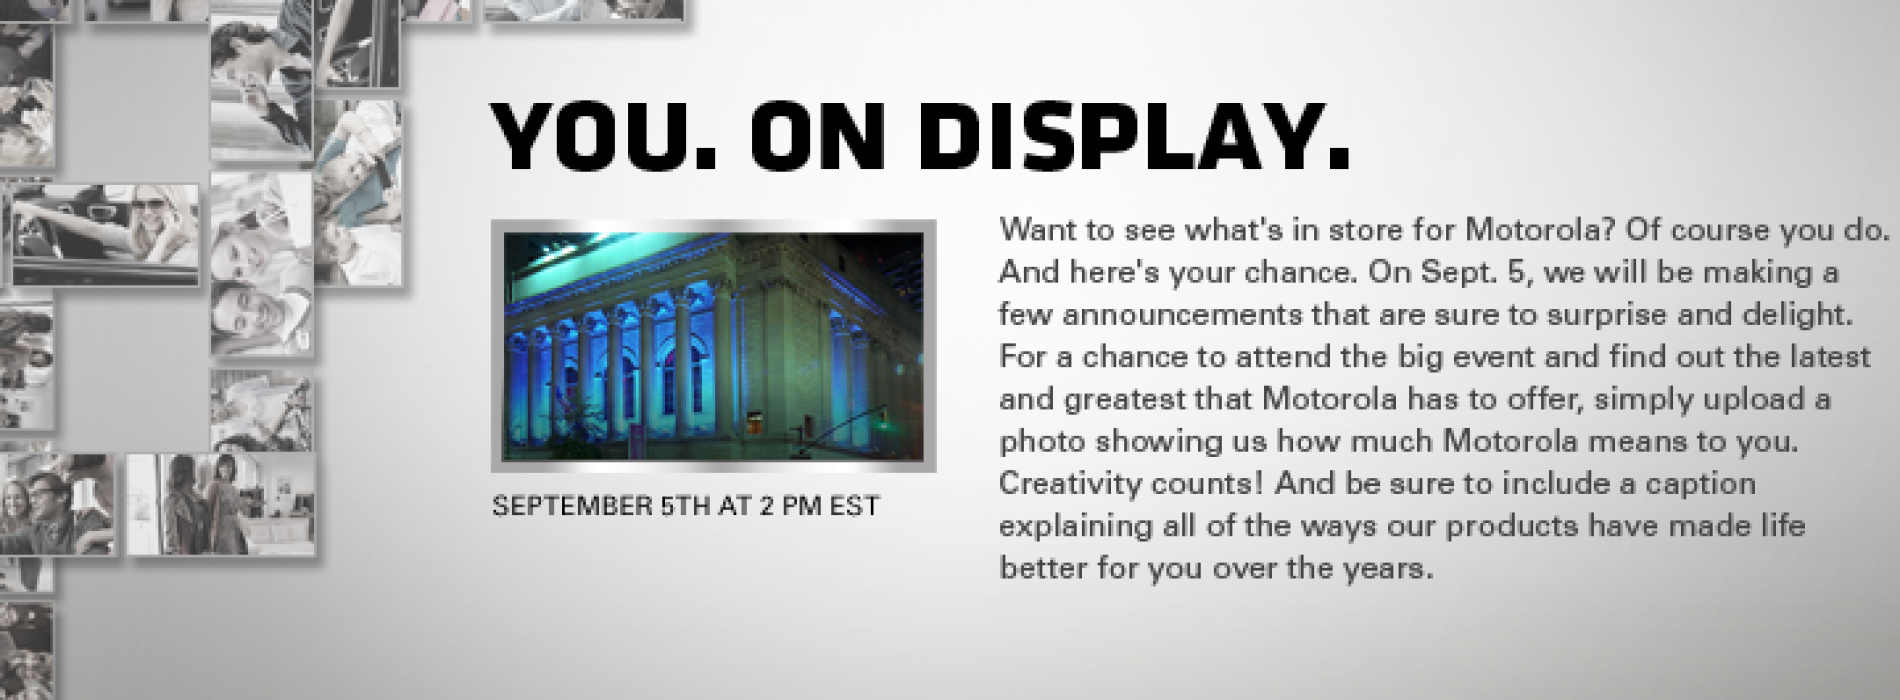 Motorola wants YOU to attend the September 5 event!